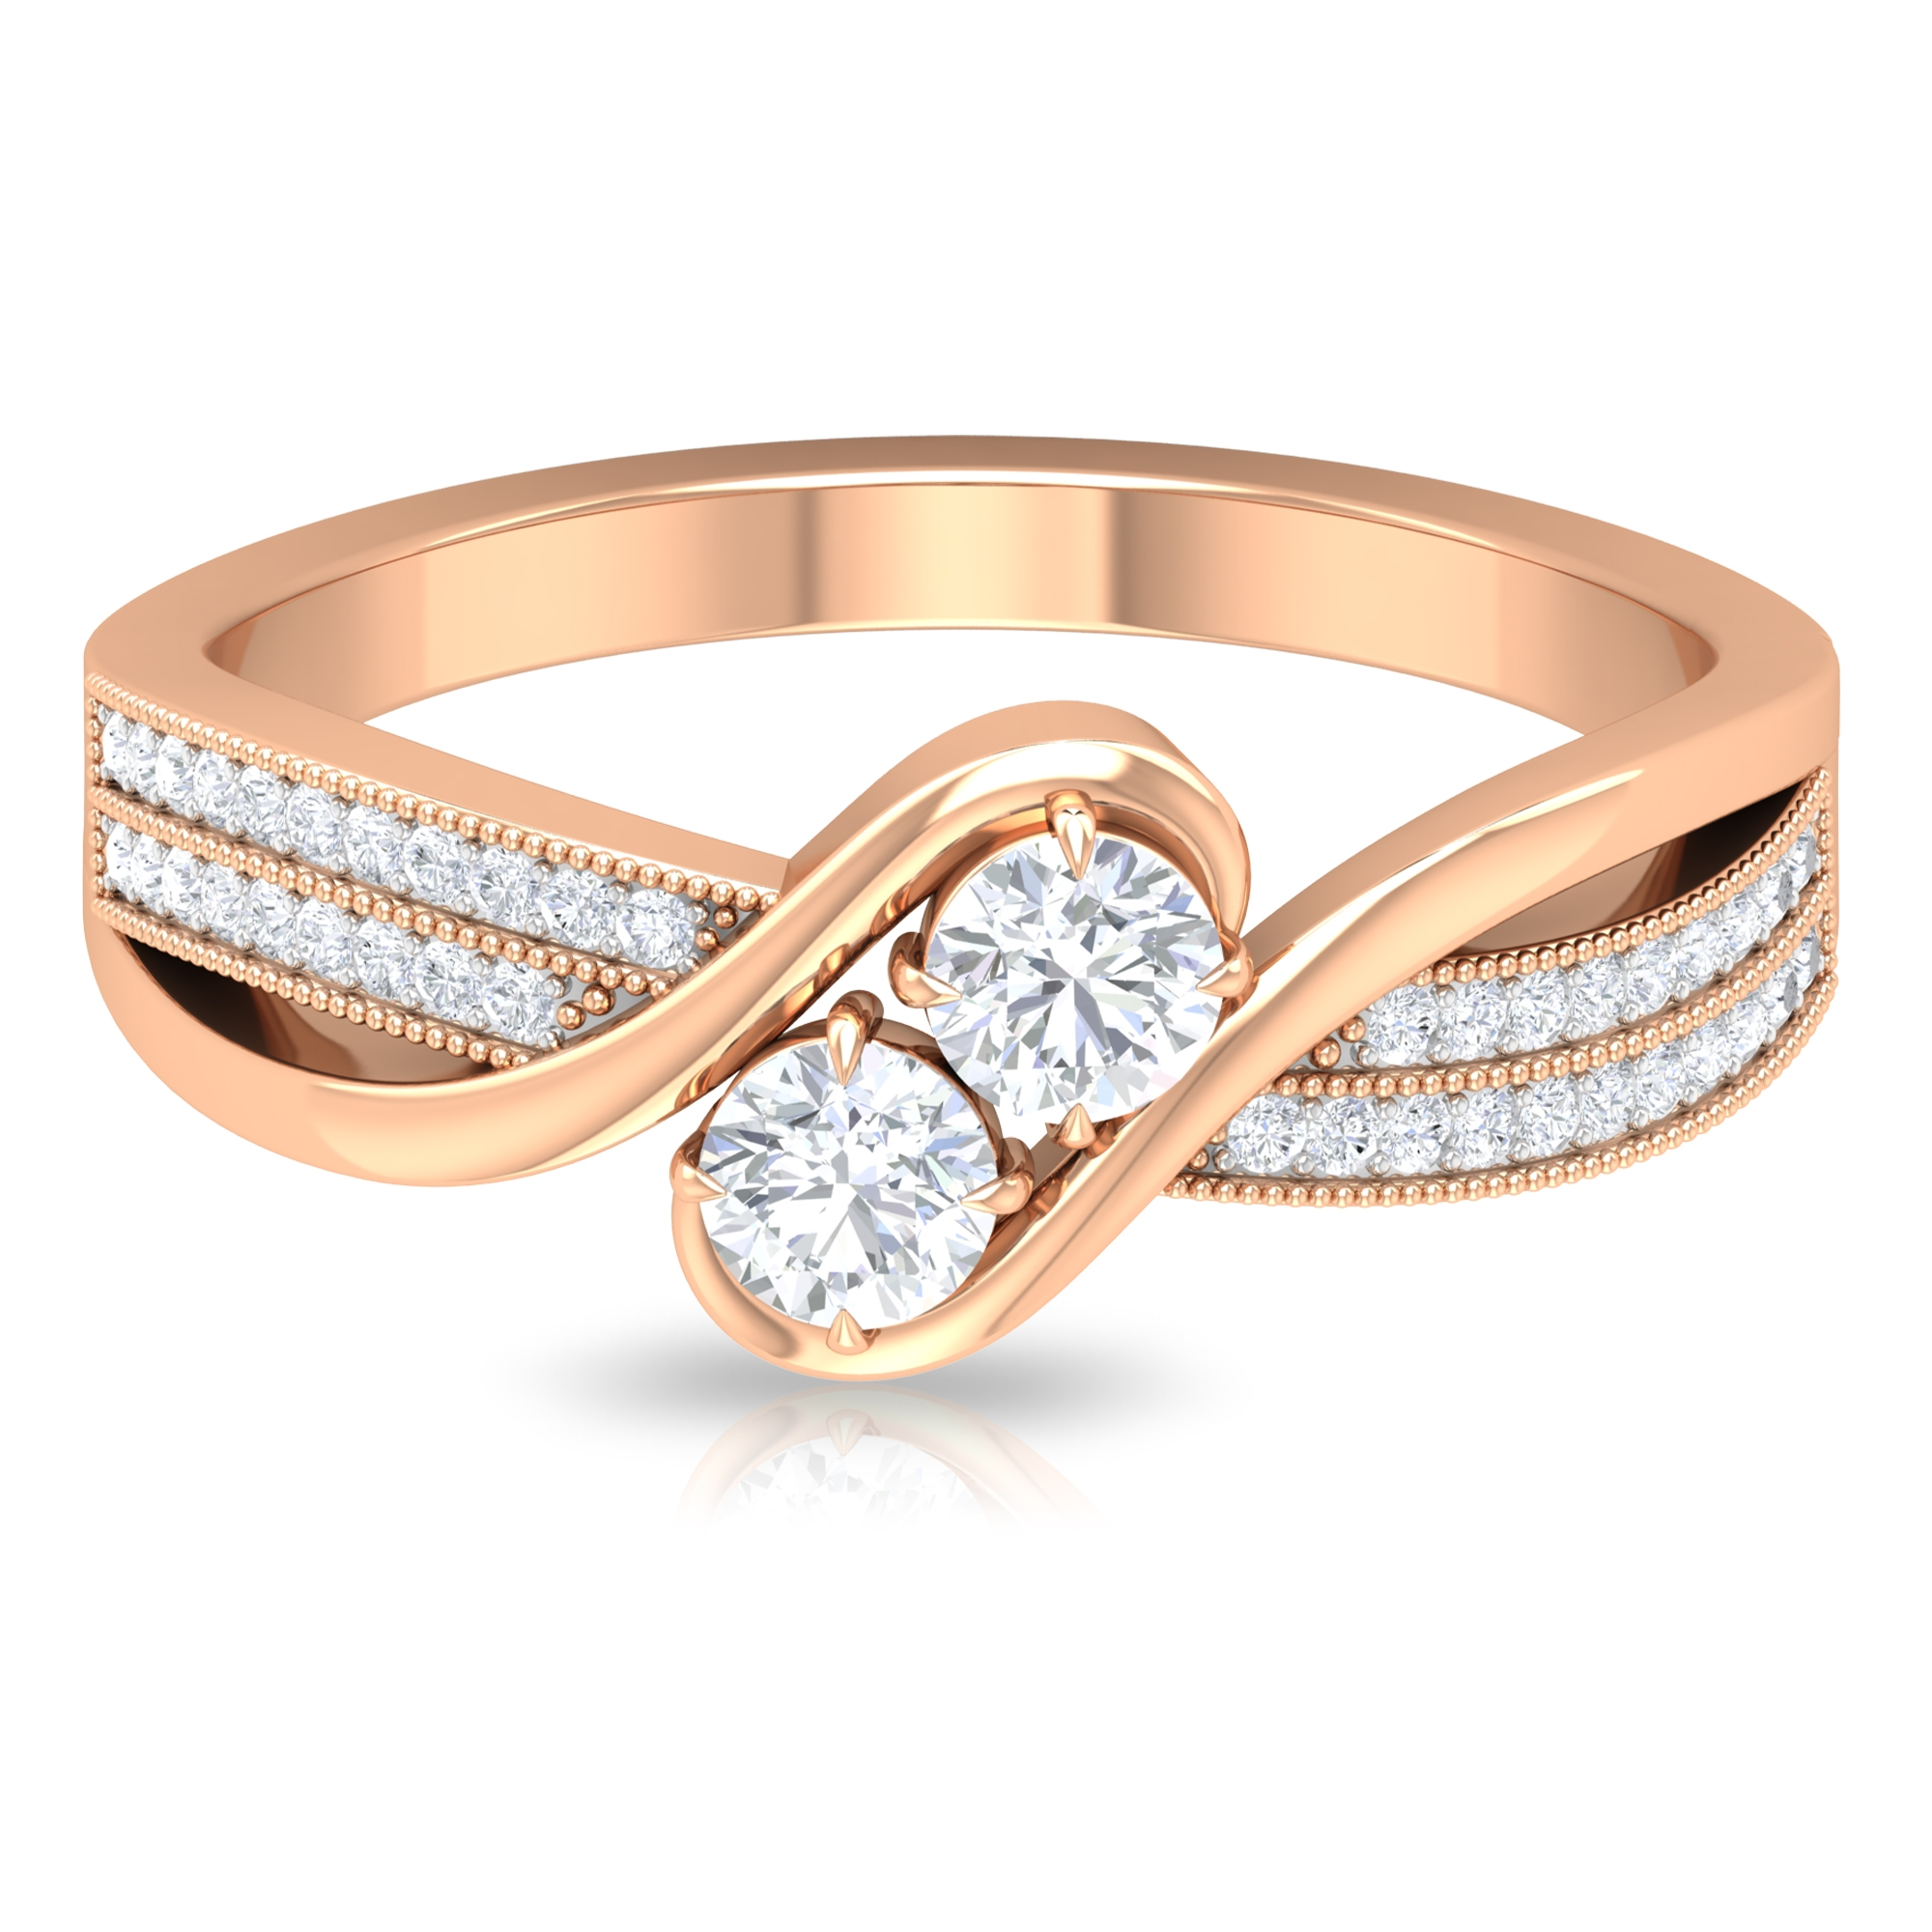 1/2 CT Diamond Designer Engagement Ring with Bypass Shank